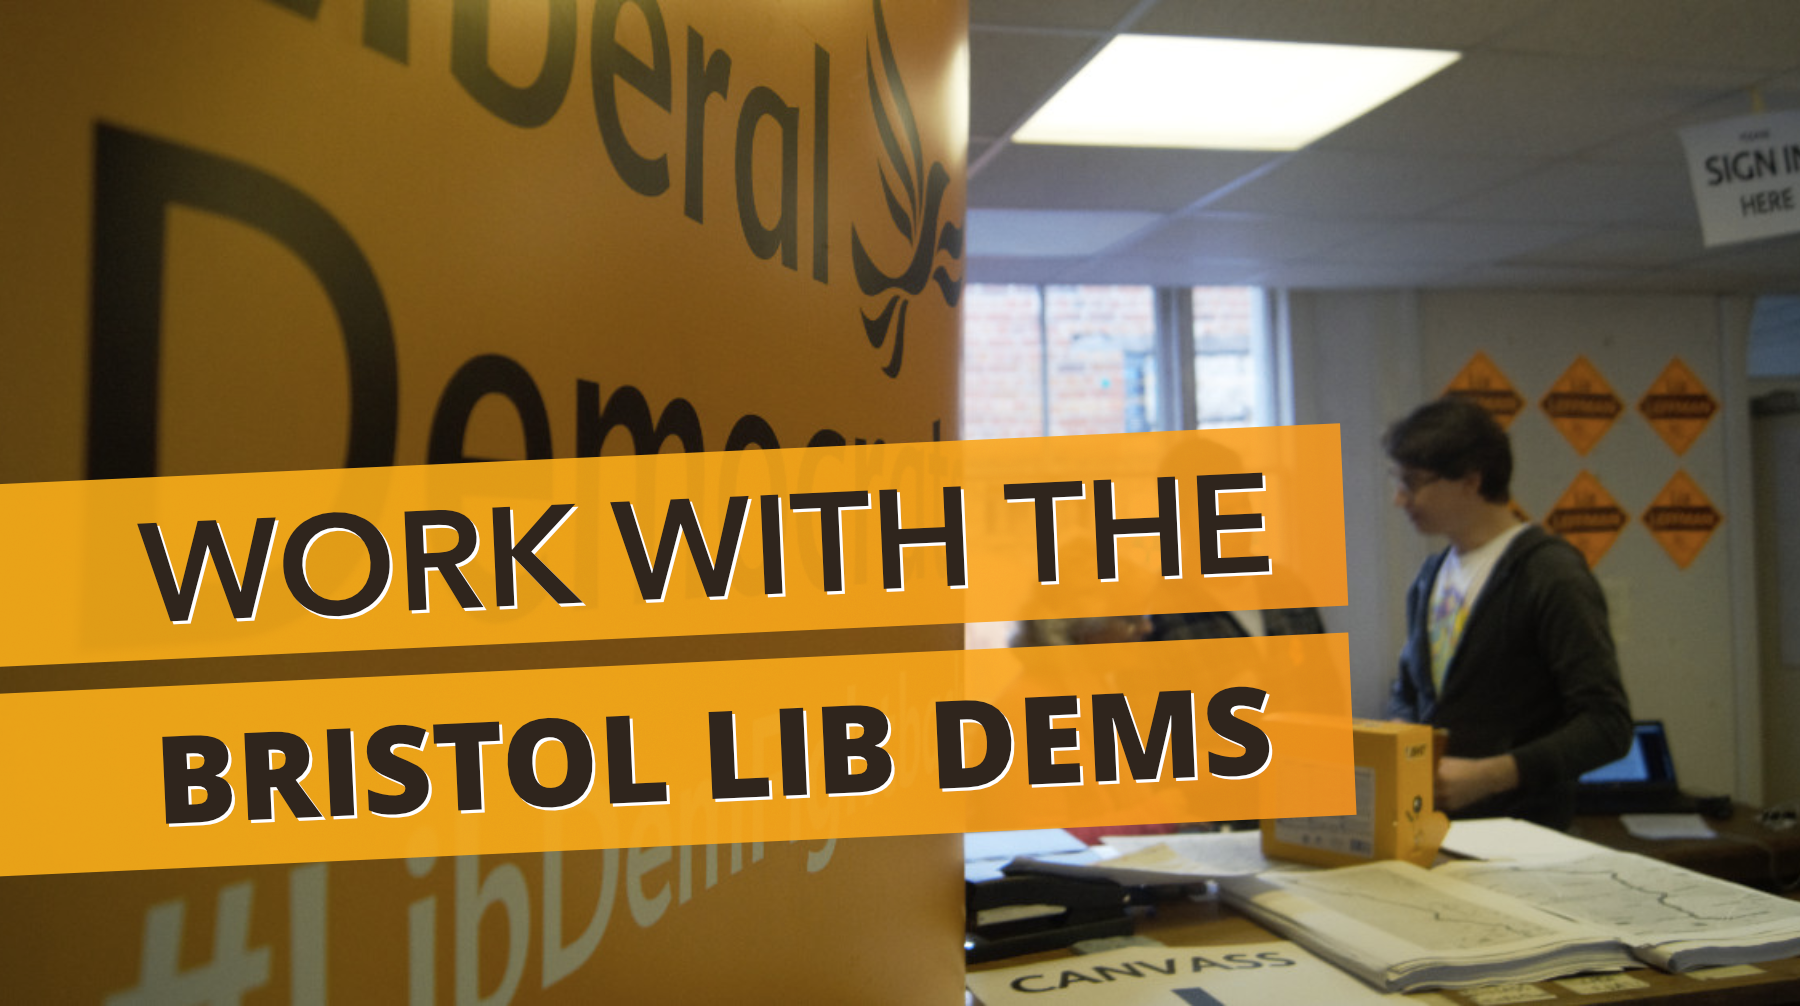 Work with the Bristol Lib Dems